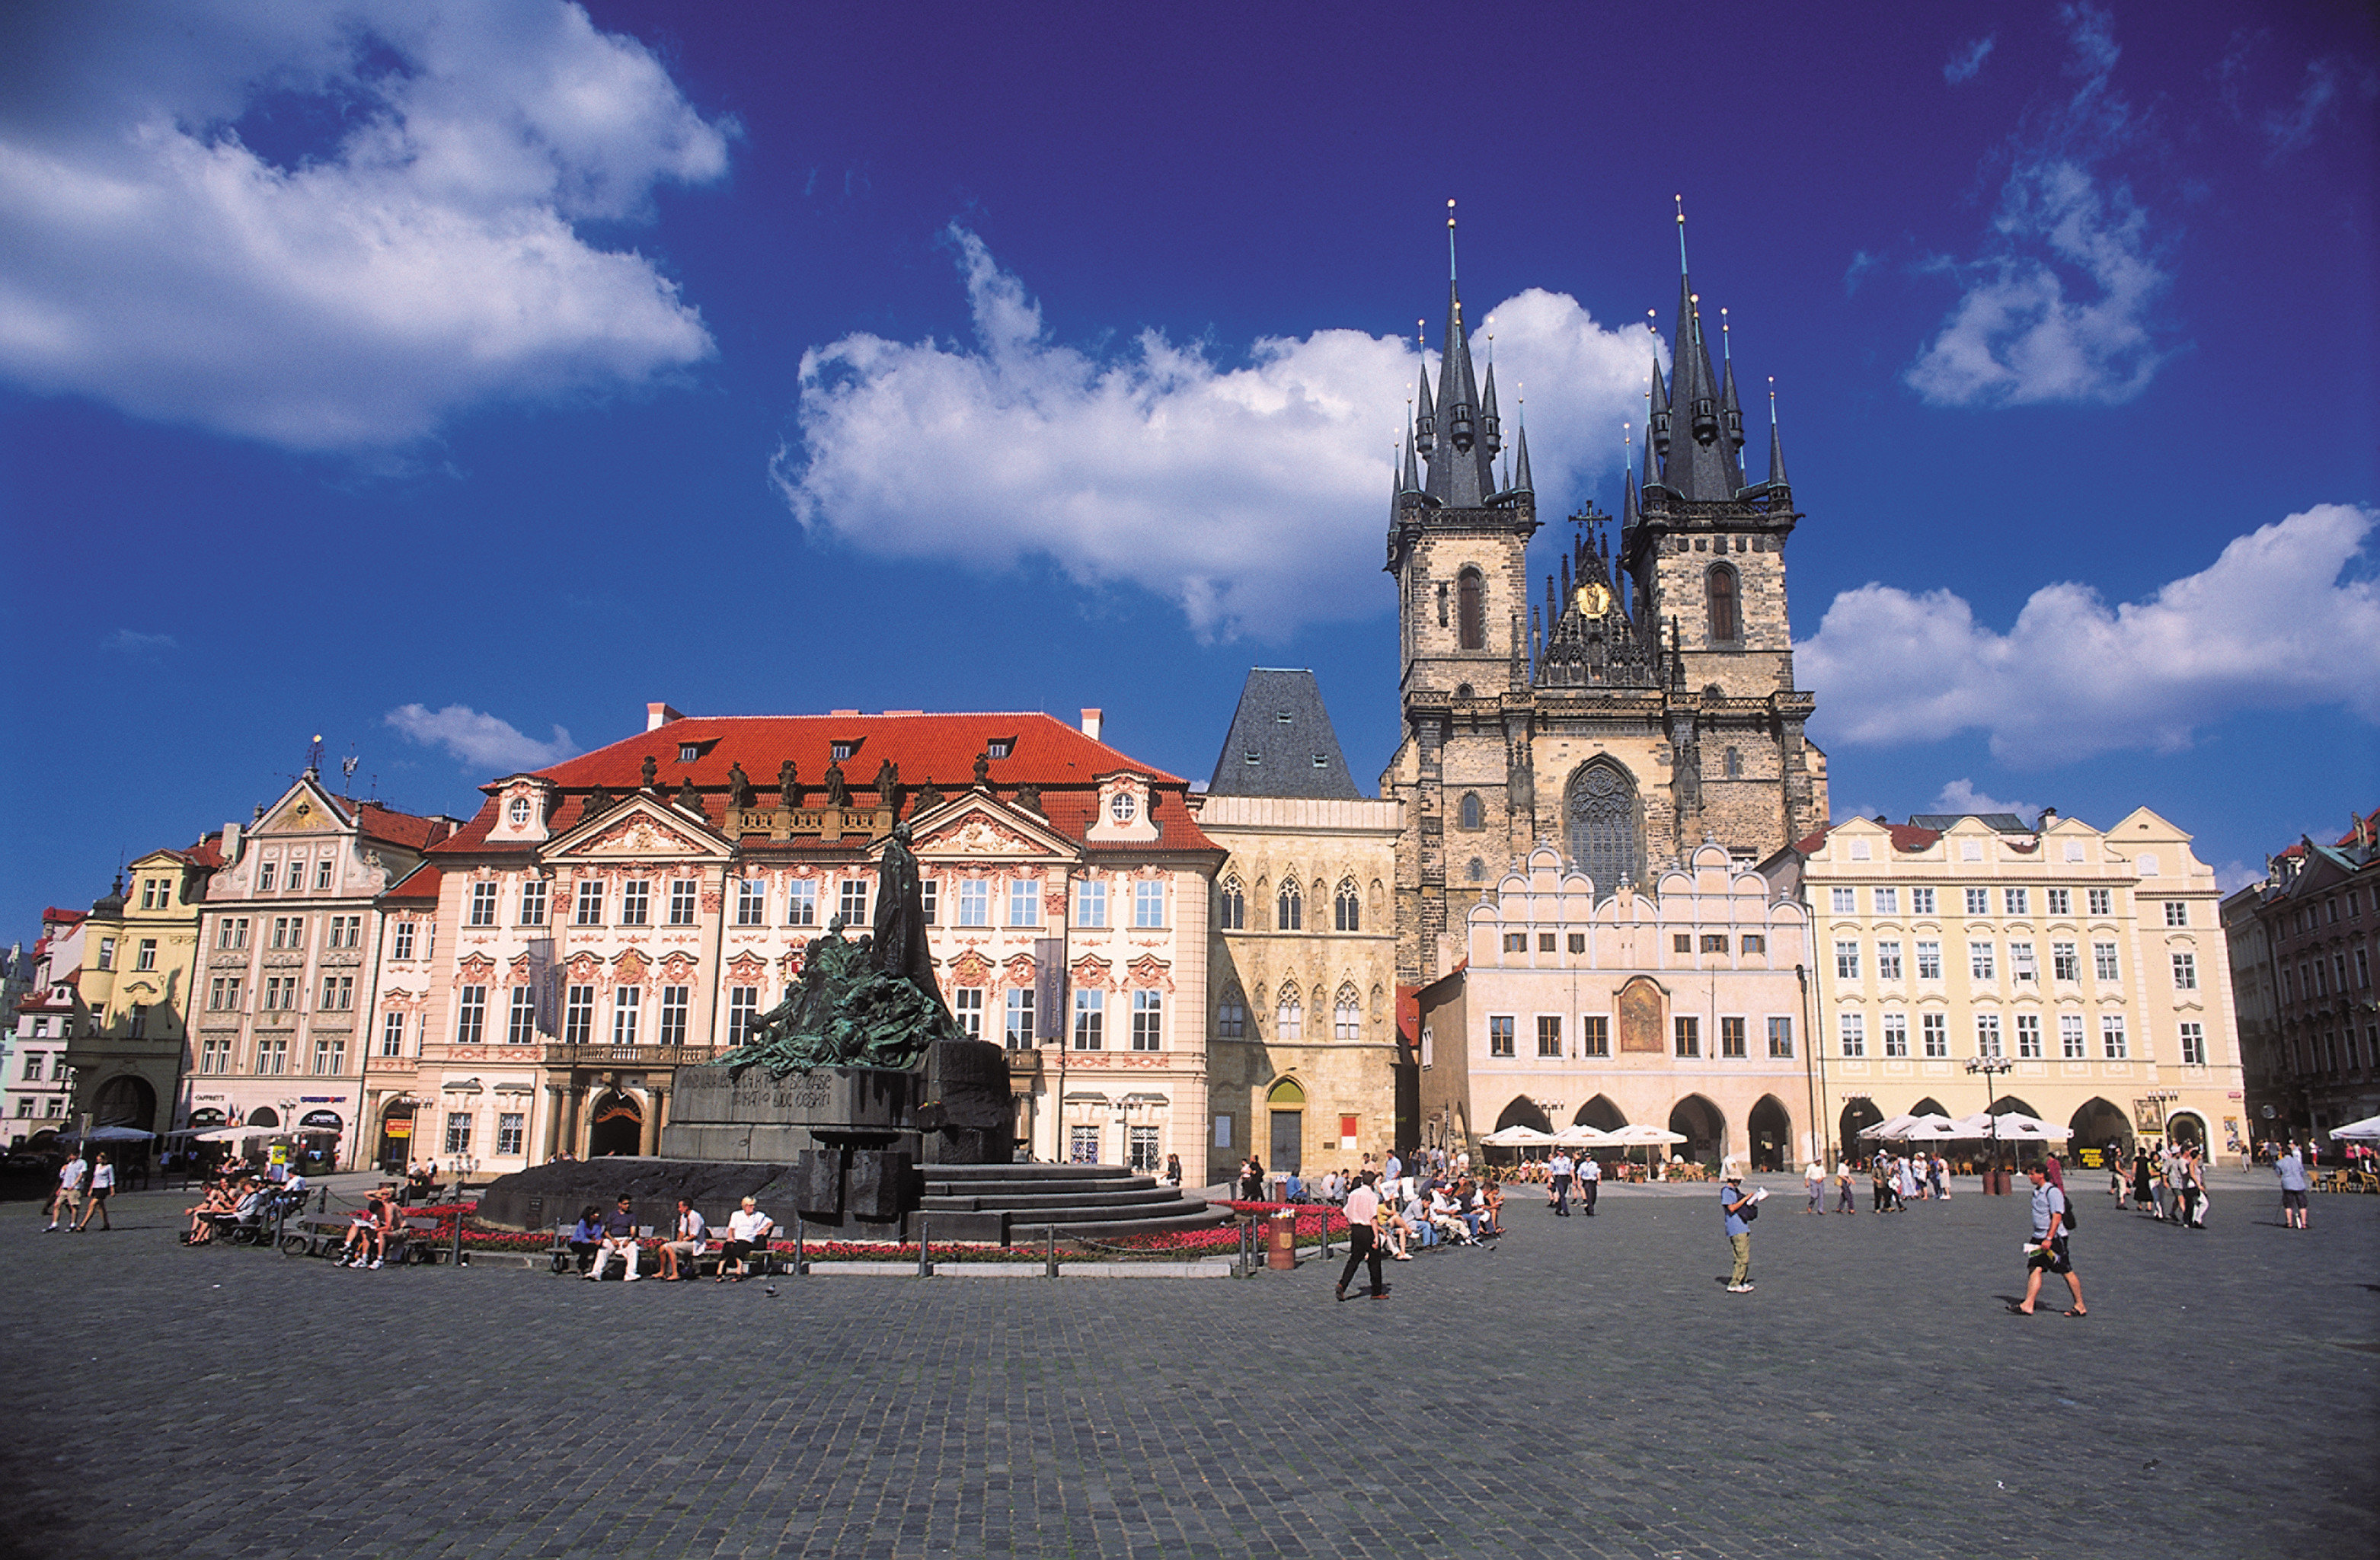 Architecture Buildings Cultural Exterior Landmarks Outdoors sky landmark Town City building cityscape town square château plaza cathedral Church palace place of worship crowd